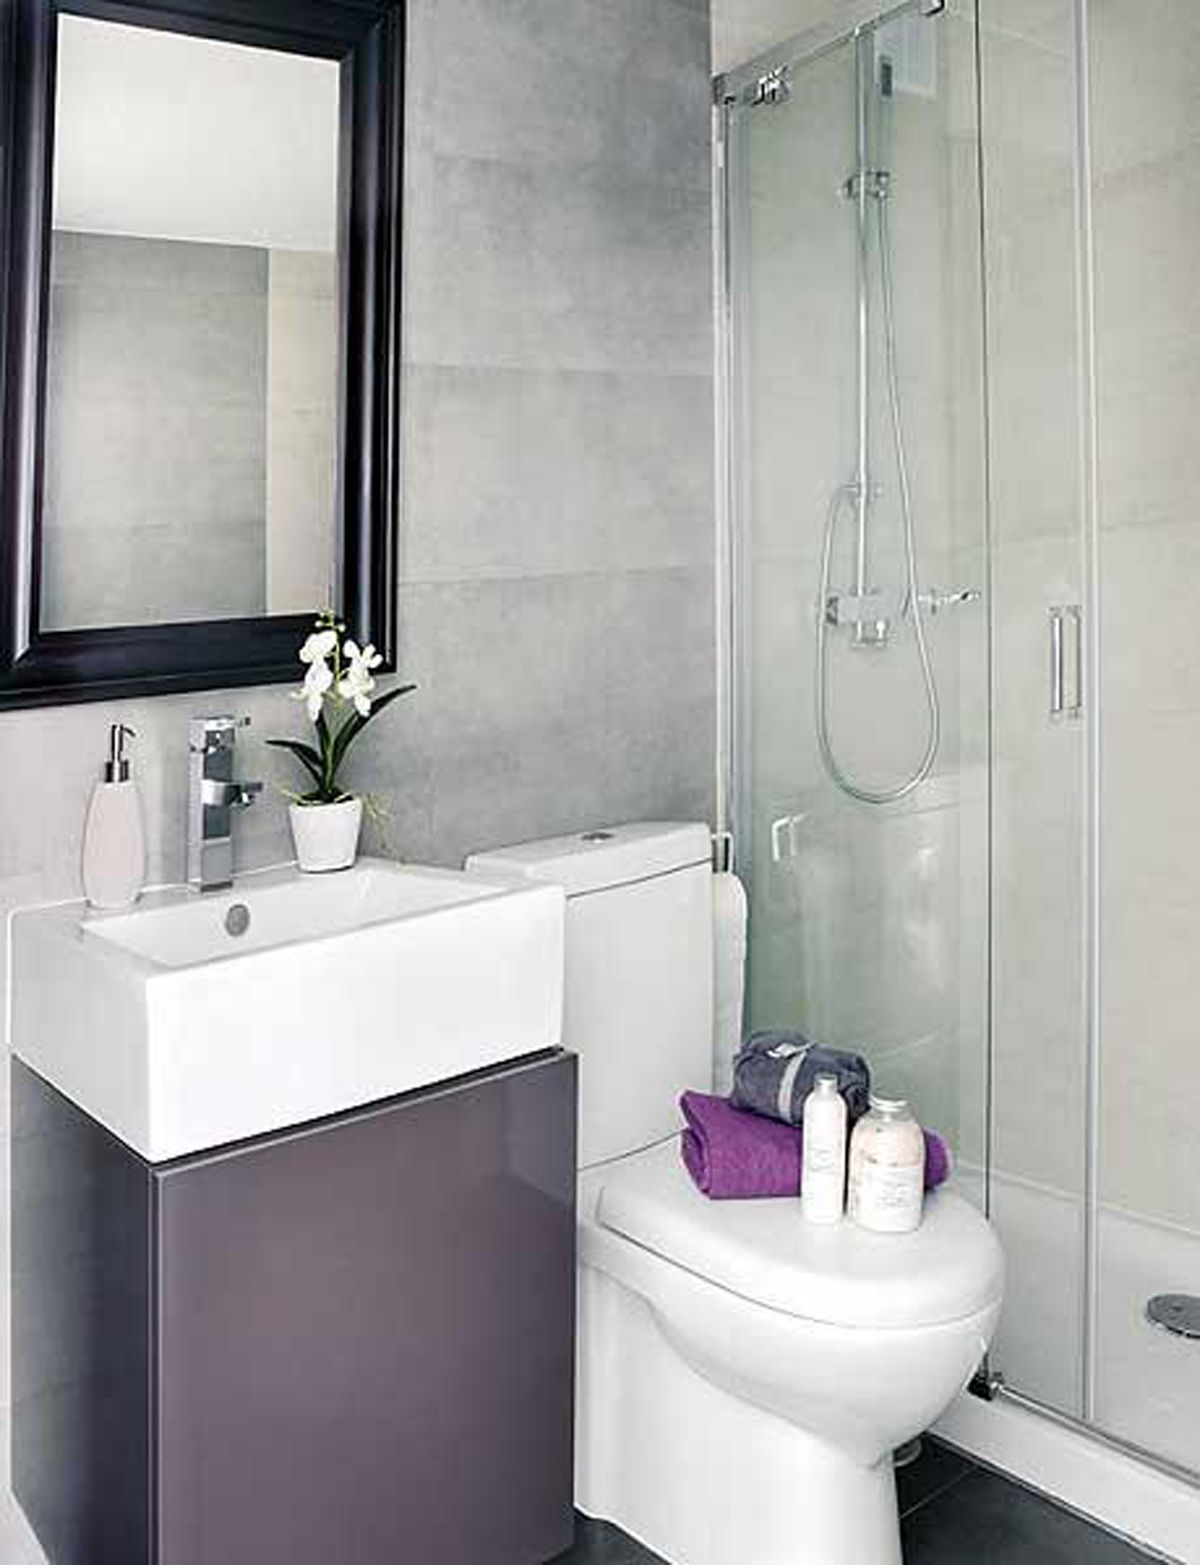 Apartment bathroom design - Apartment Bathroom Design